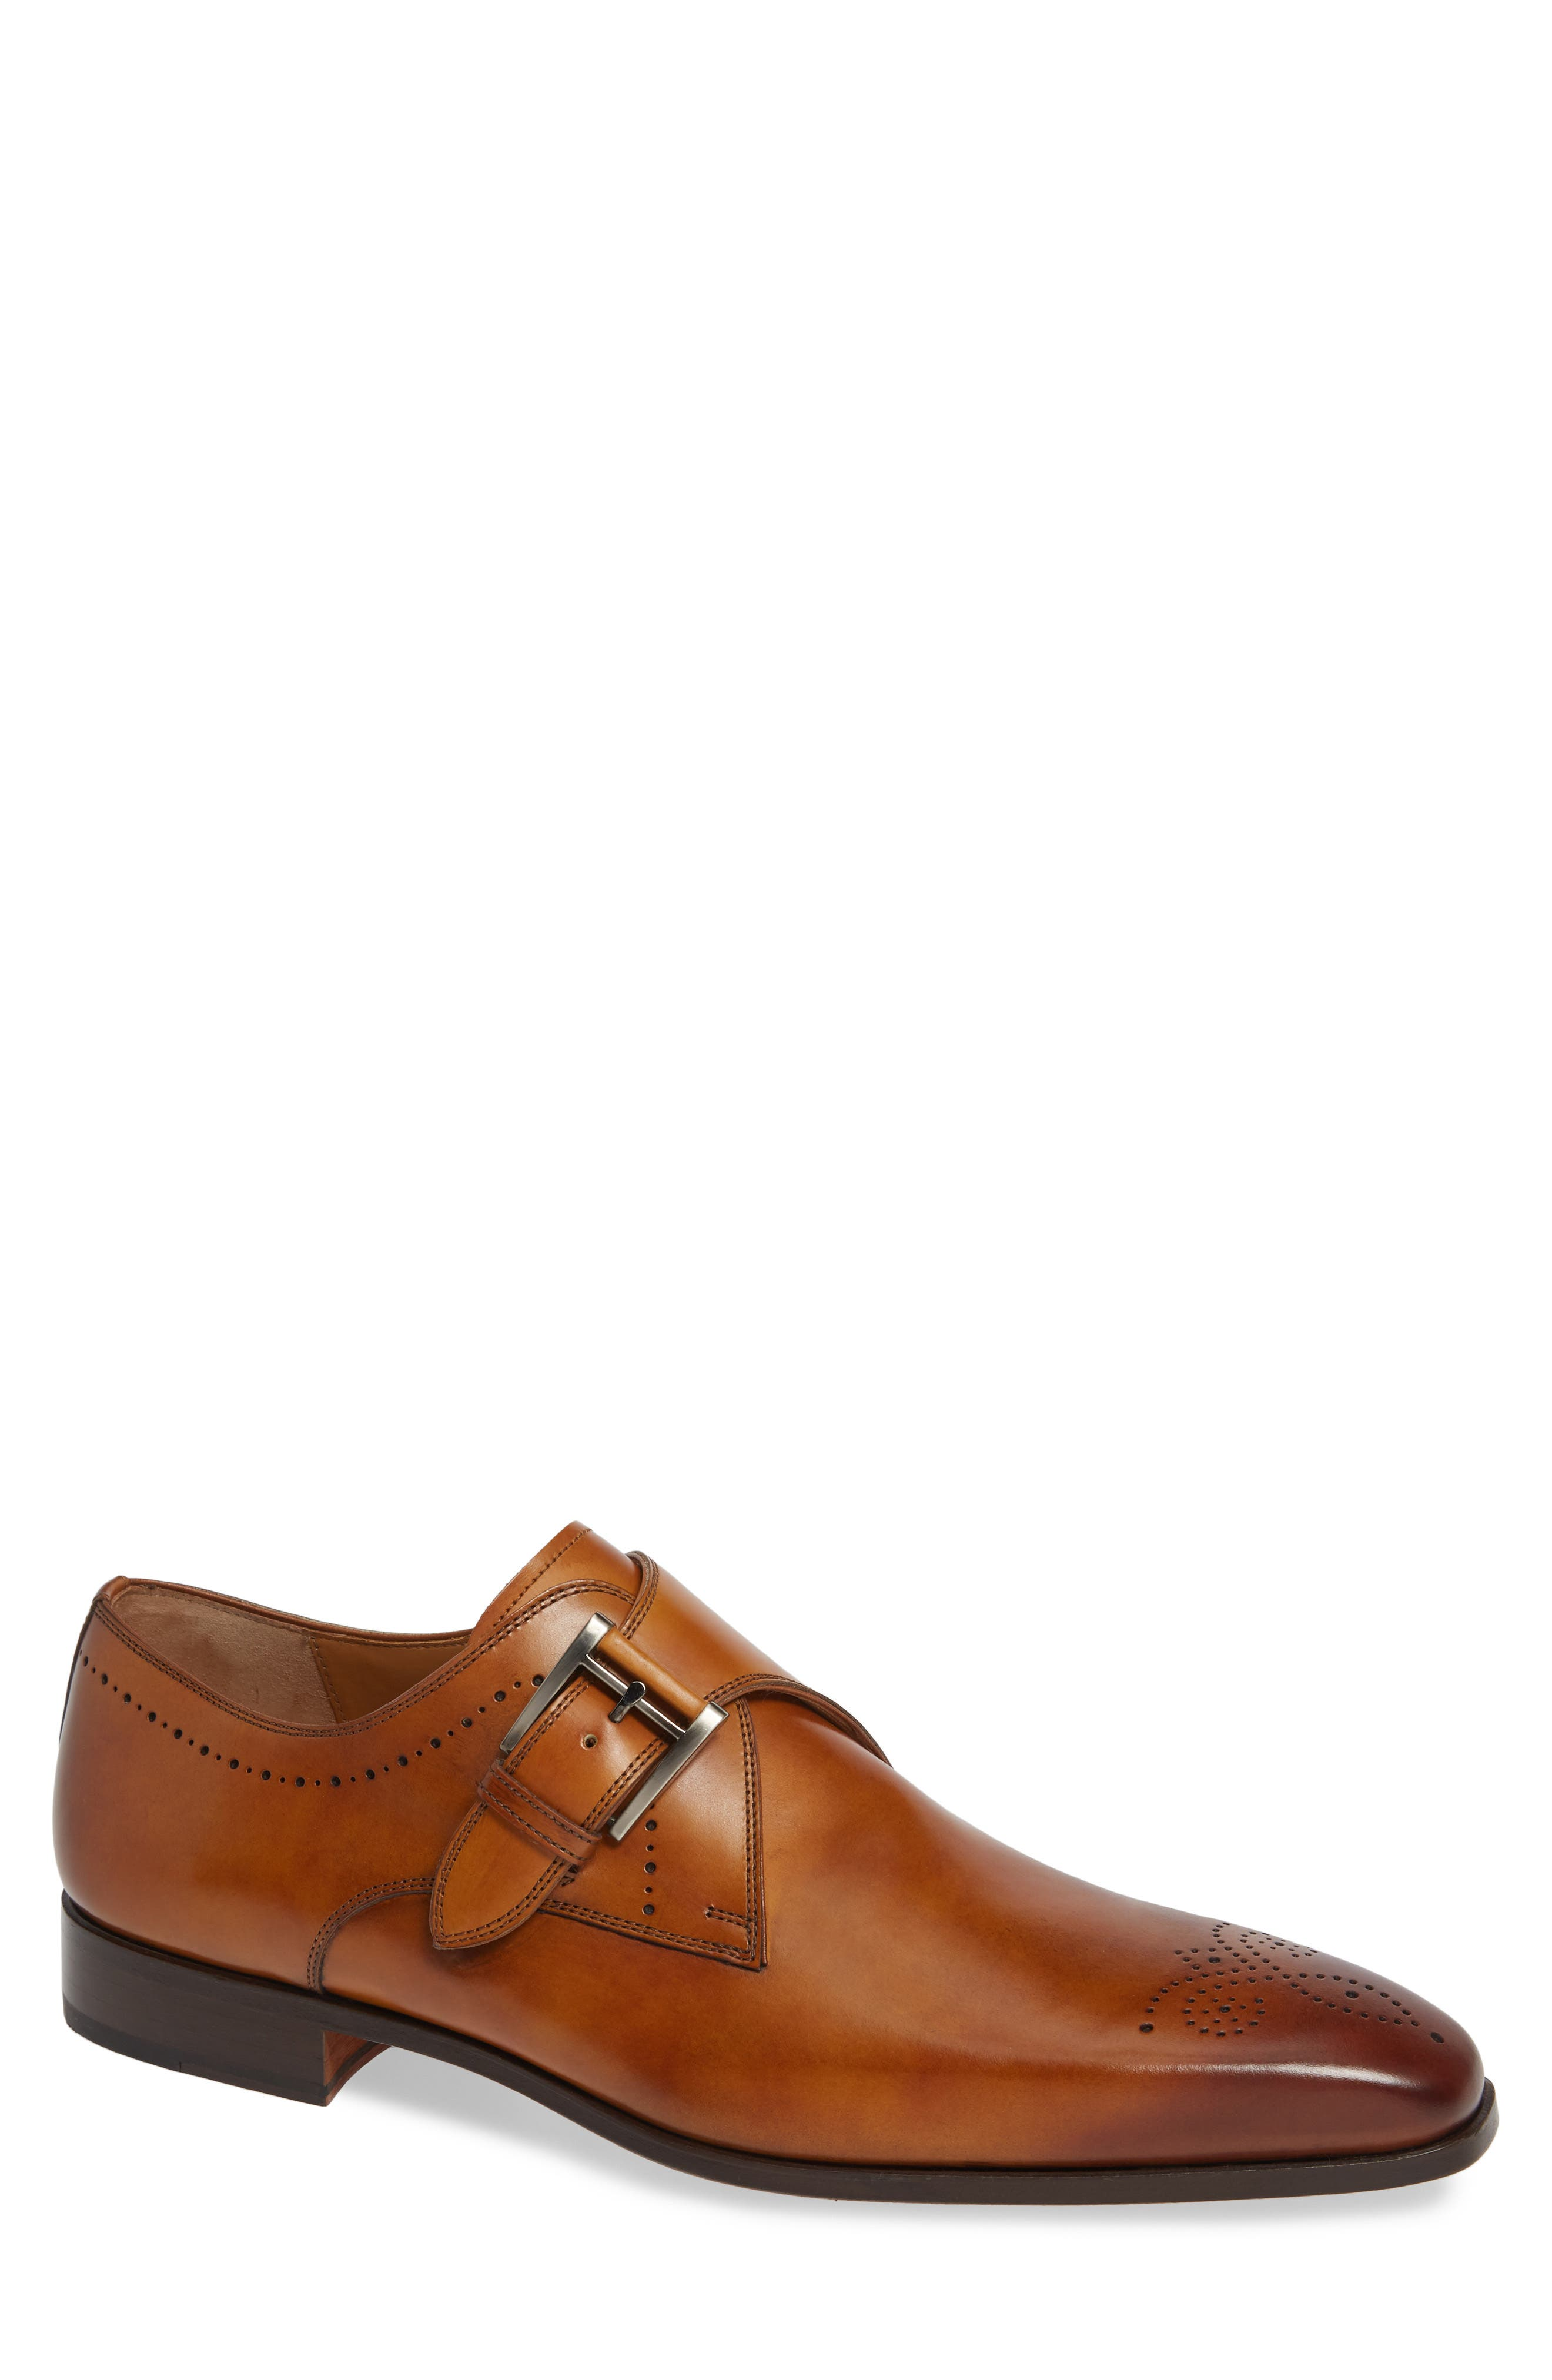 Geruasi Monk Strap Shoe,                             Main thumbnail 1, color,                             230